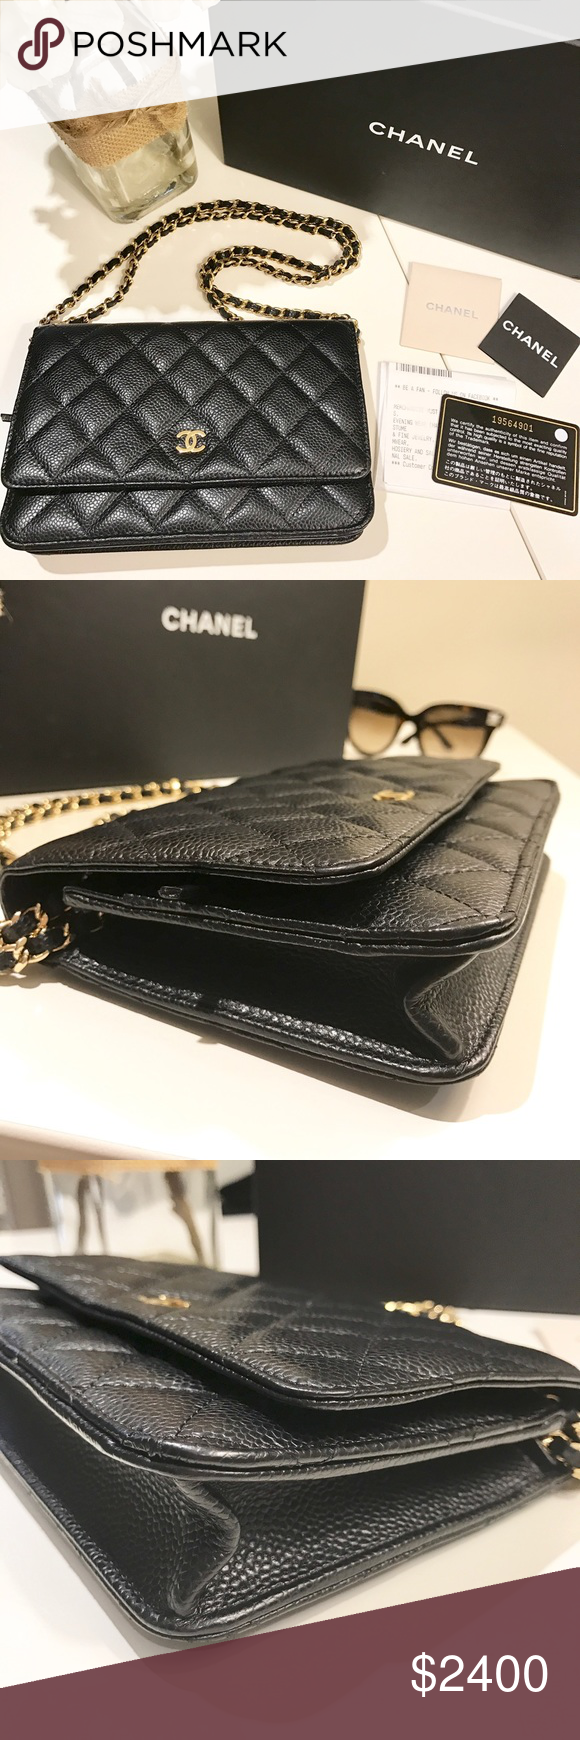 094174f78c7e Authentic Chanel Classic Wallet on Chain Authentic Chanel classic wallet on  chain in black quilted caviar